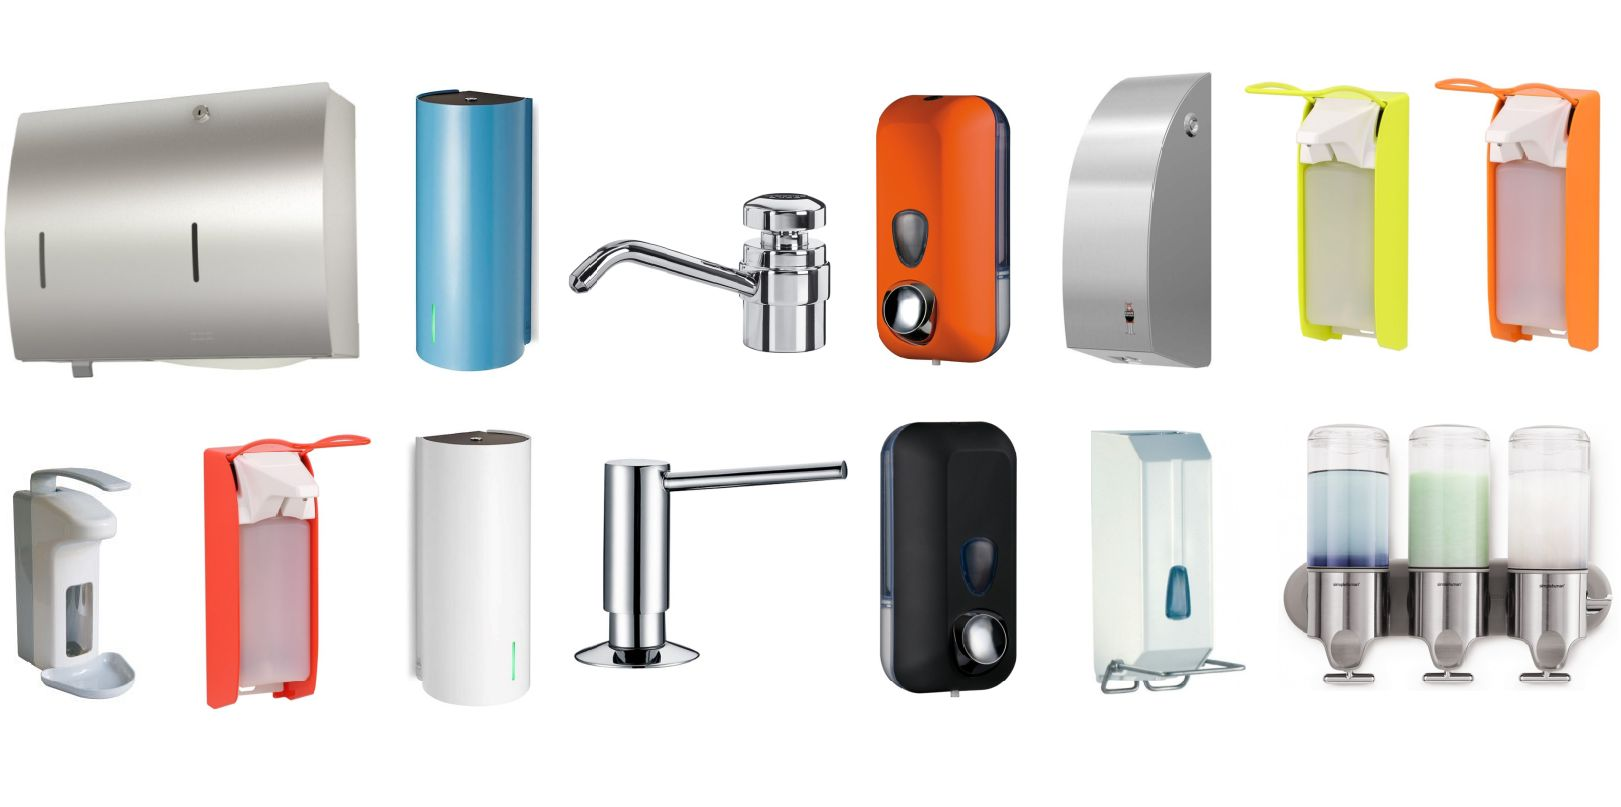 Push-Button-and-Automatic-Soap-Dispensers